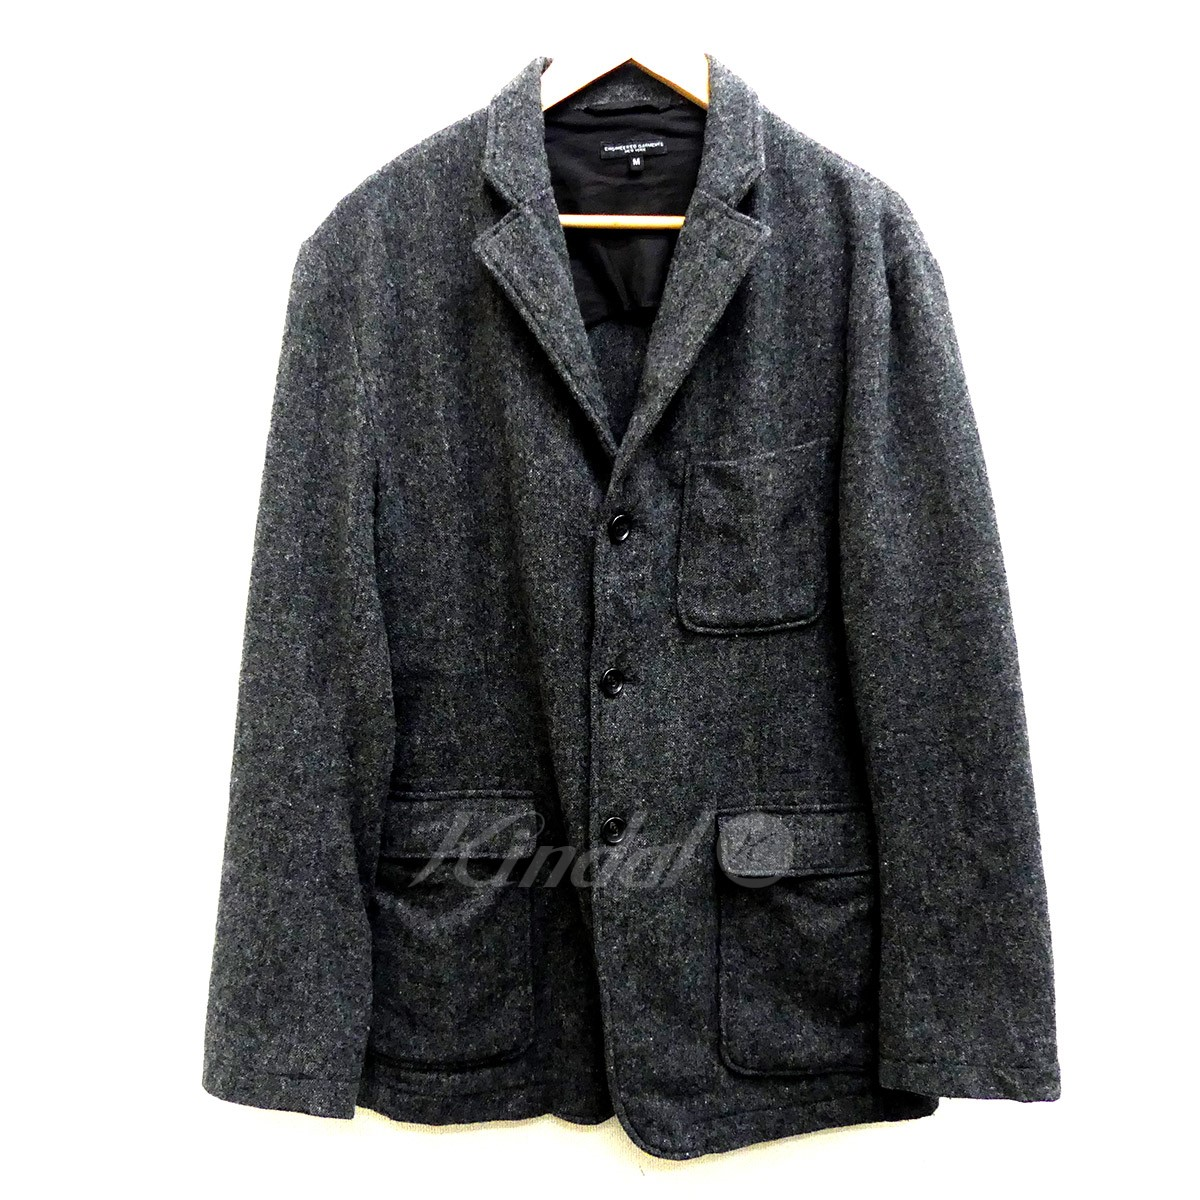 【中古】Engineered Garments Baker Jacket Wool Homespun ウールジャケット 【送料無料】 【150122】 【KIND1550】